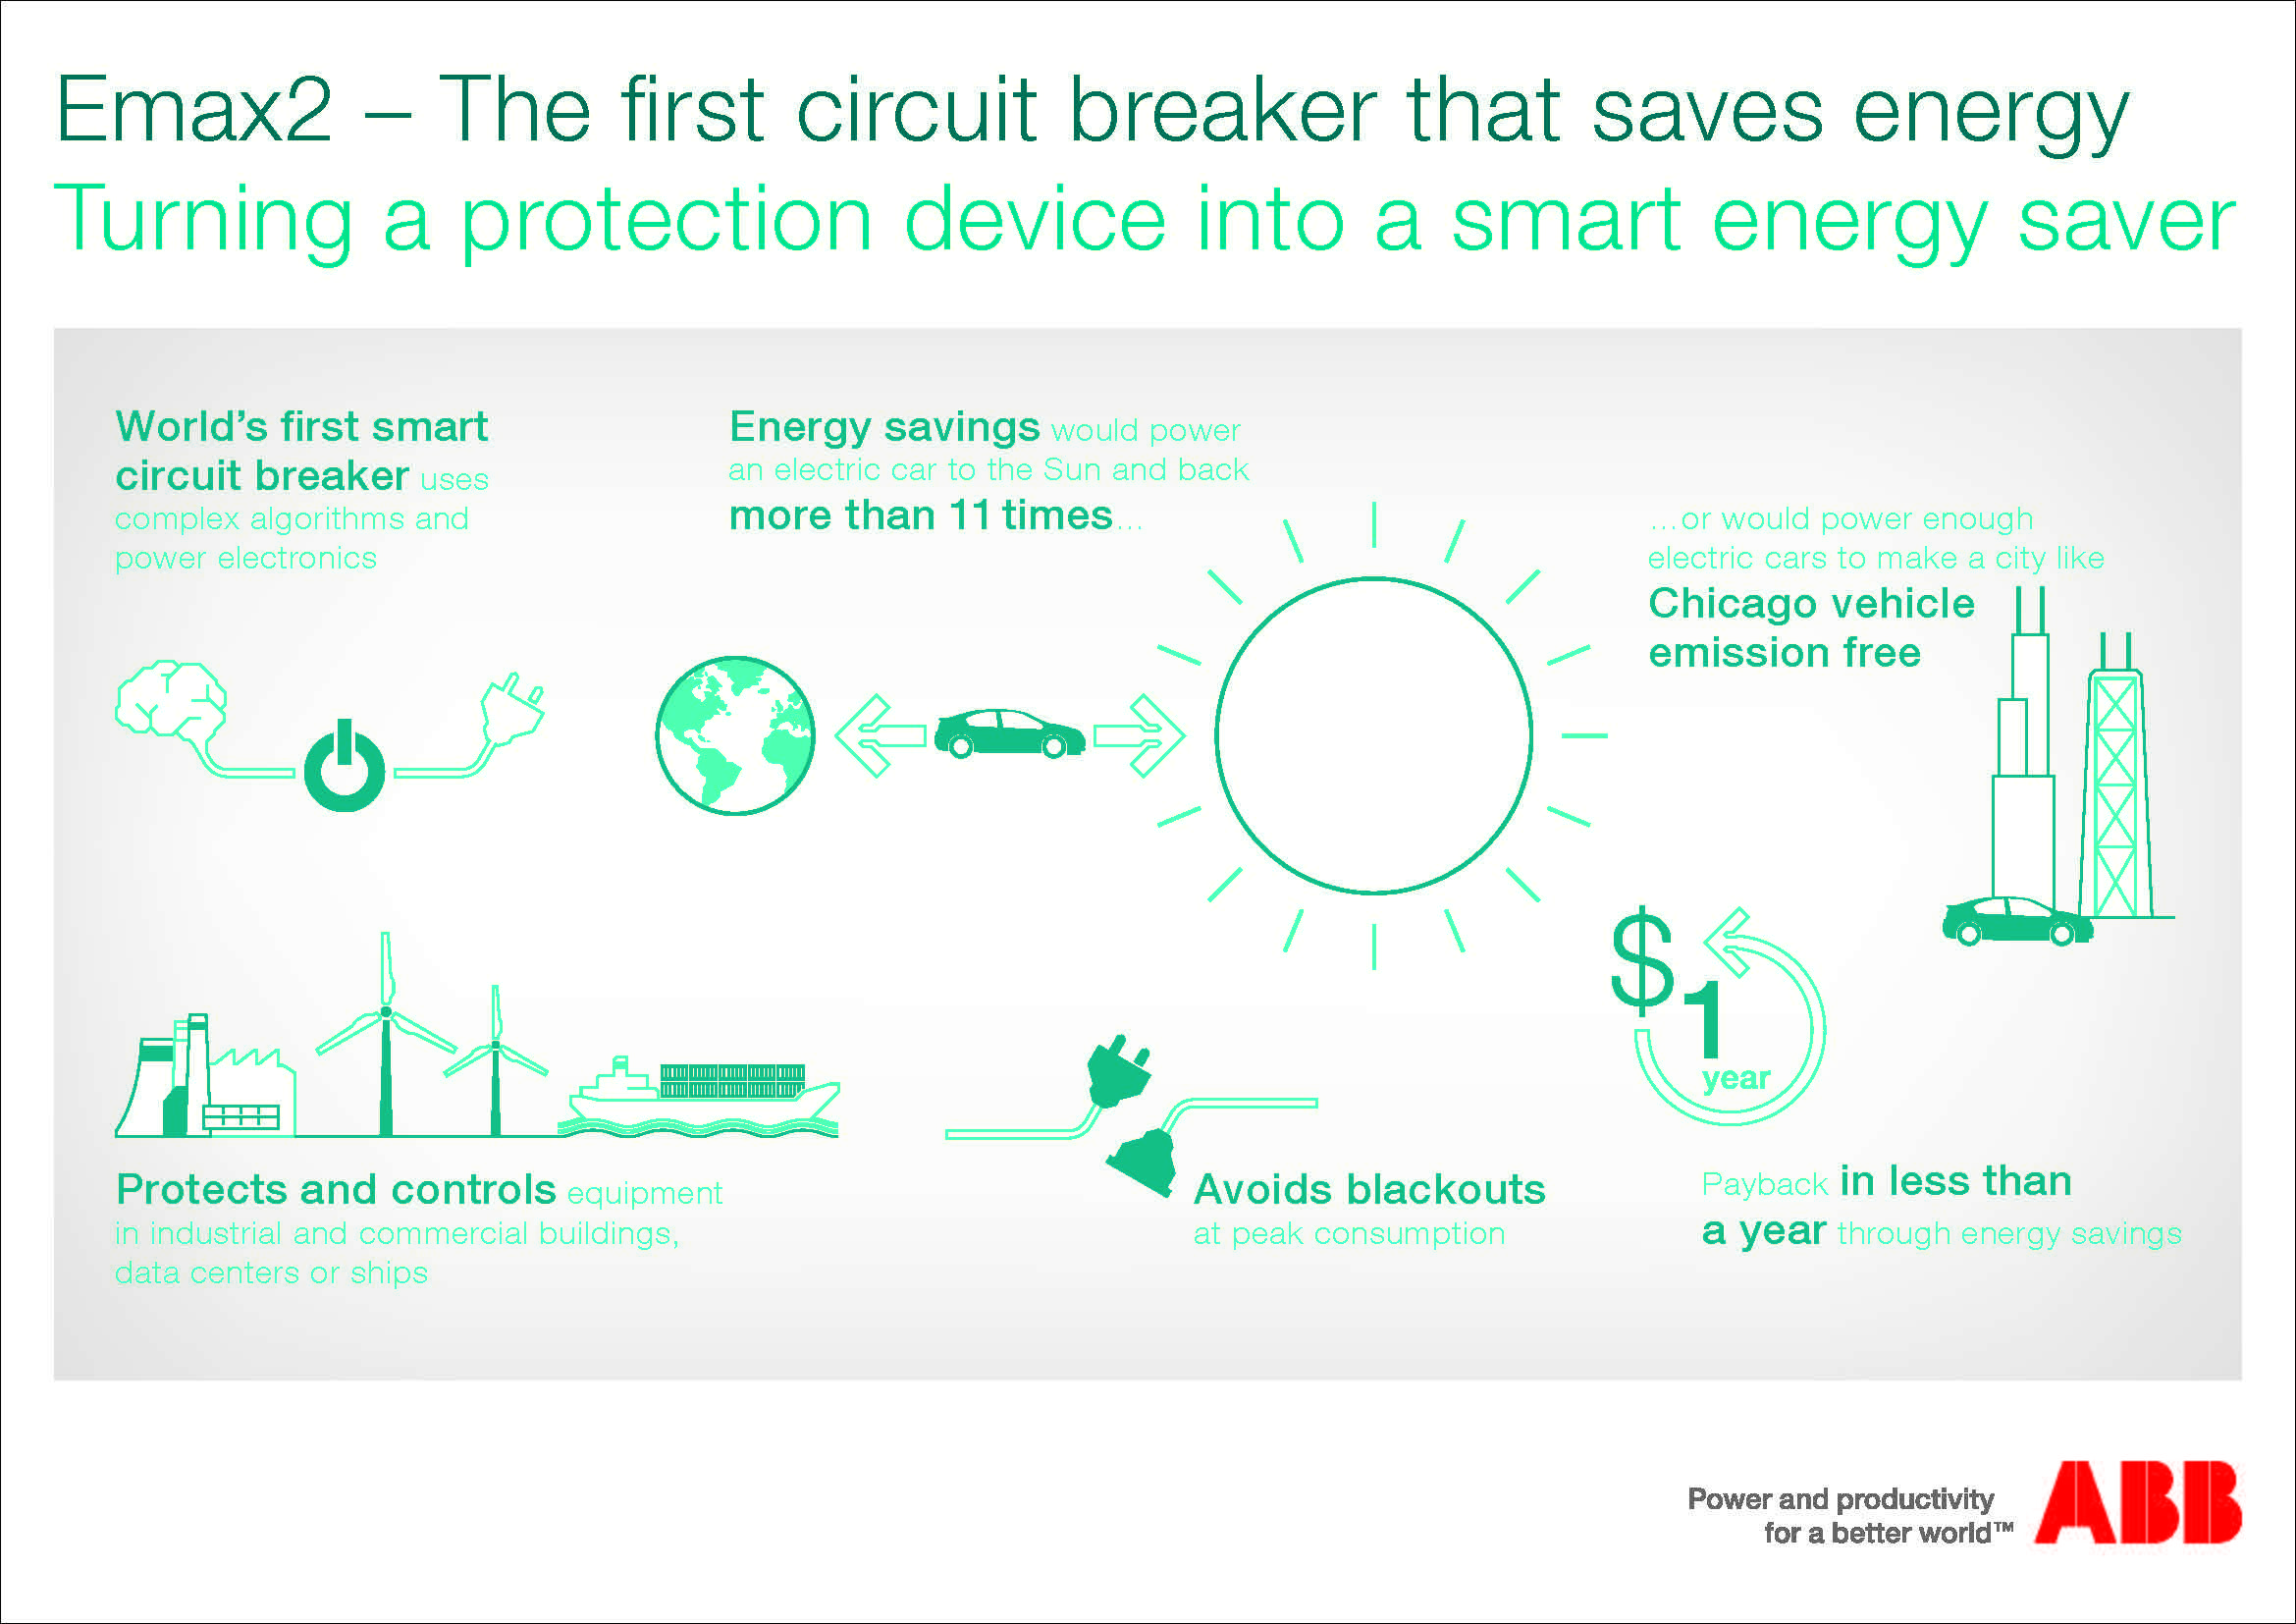 Pin By Design Publik On Abb Infographics Pinterest Power Saver Circuit Emax2